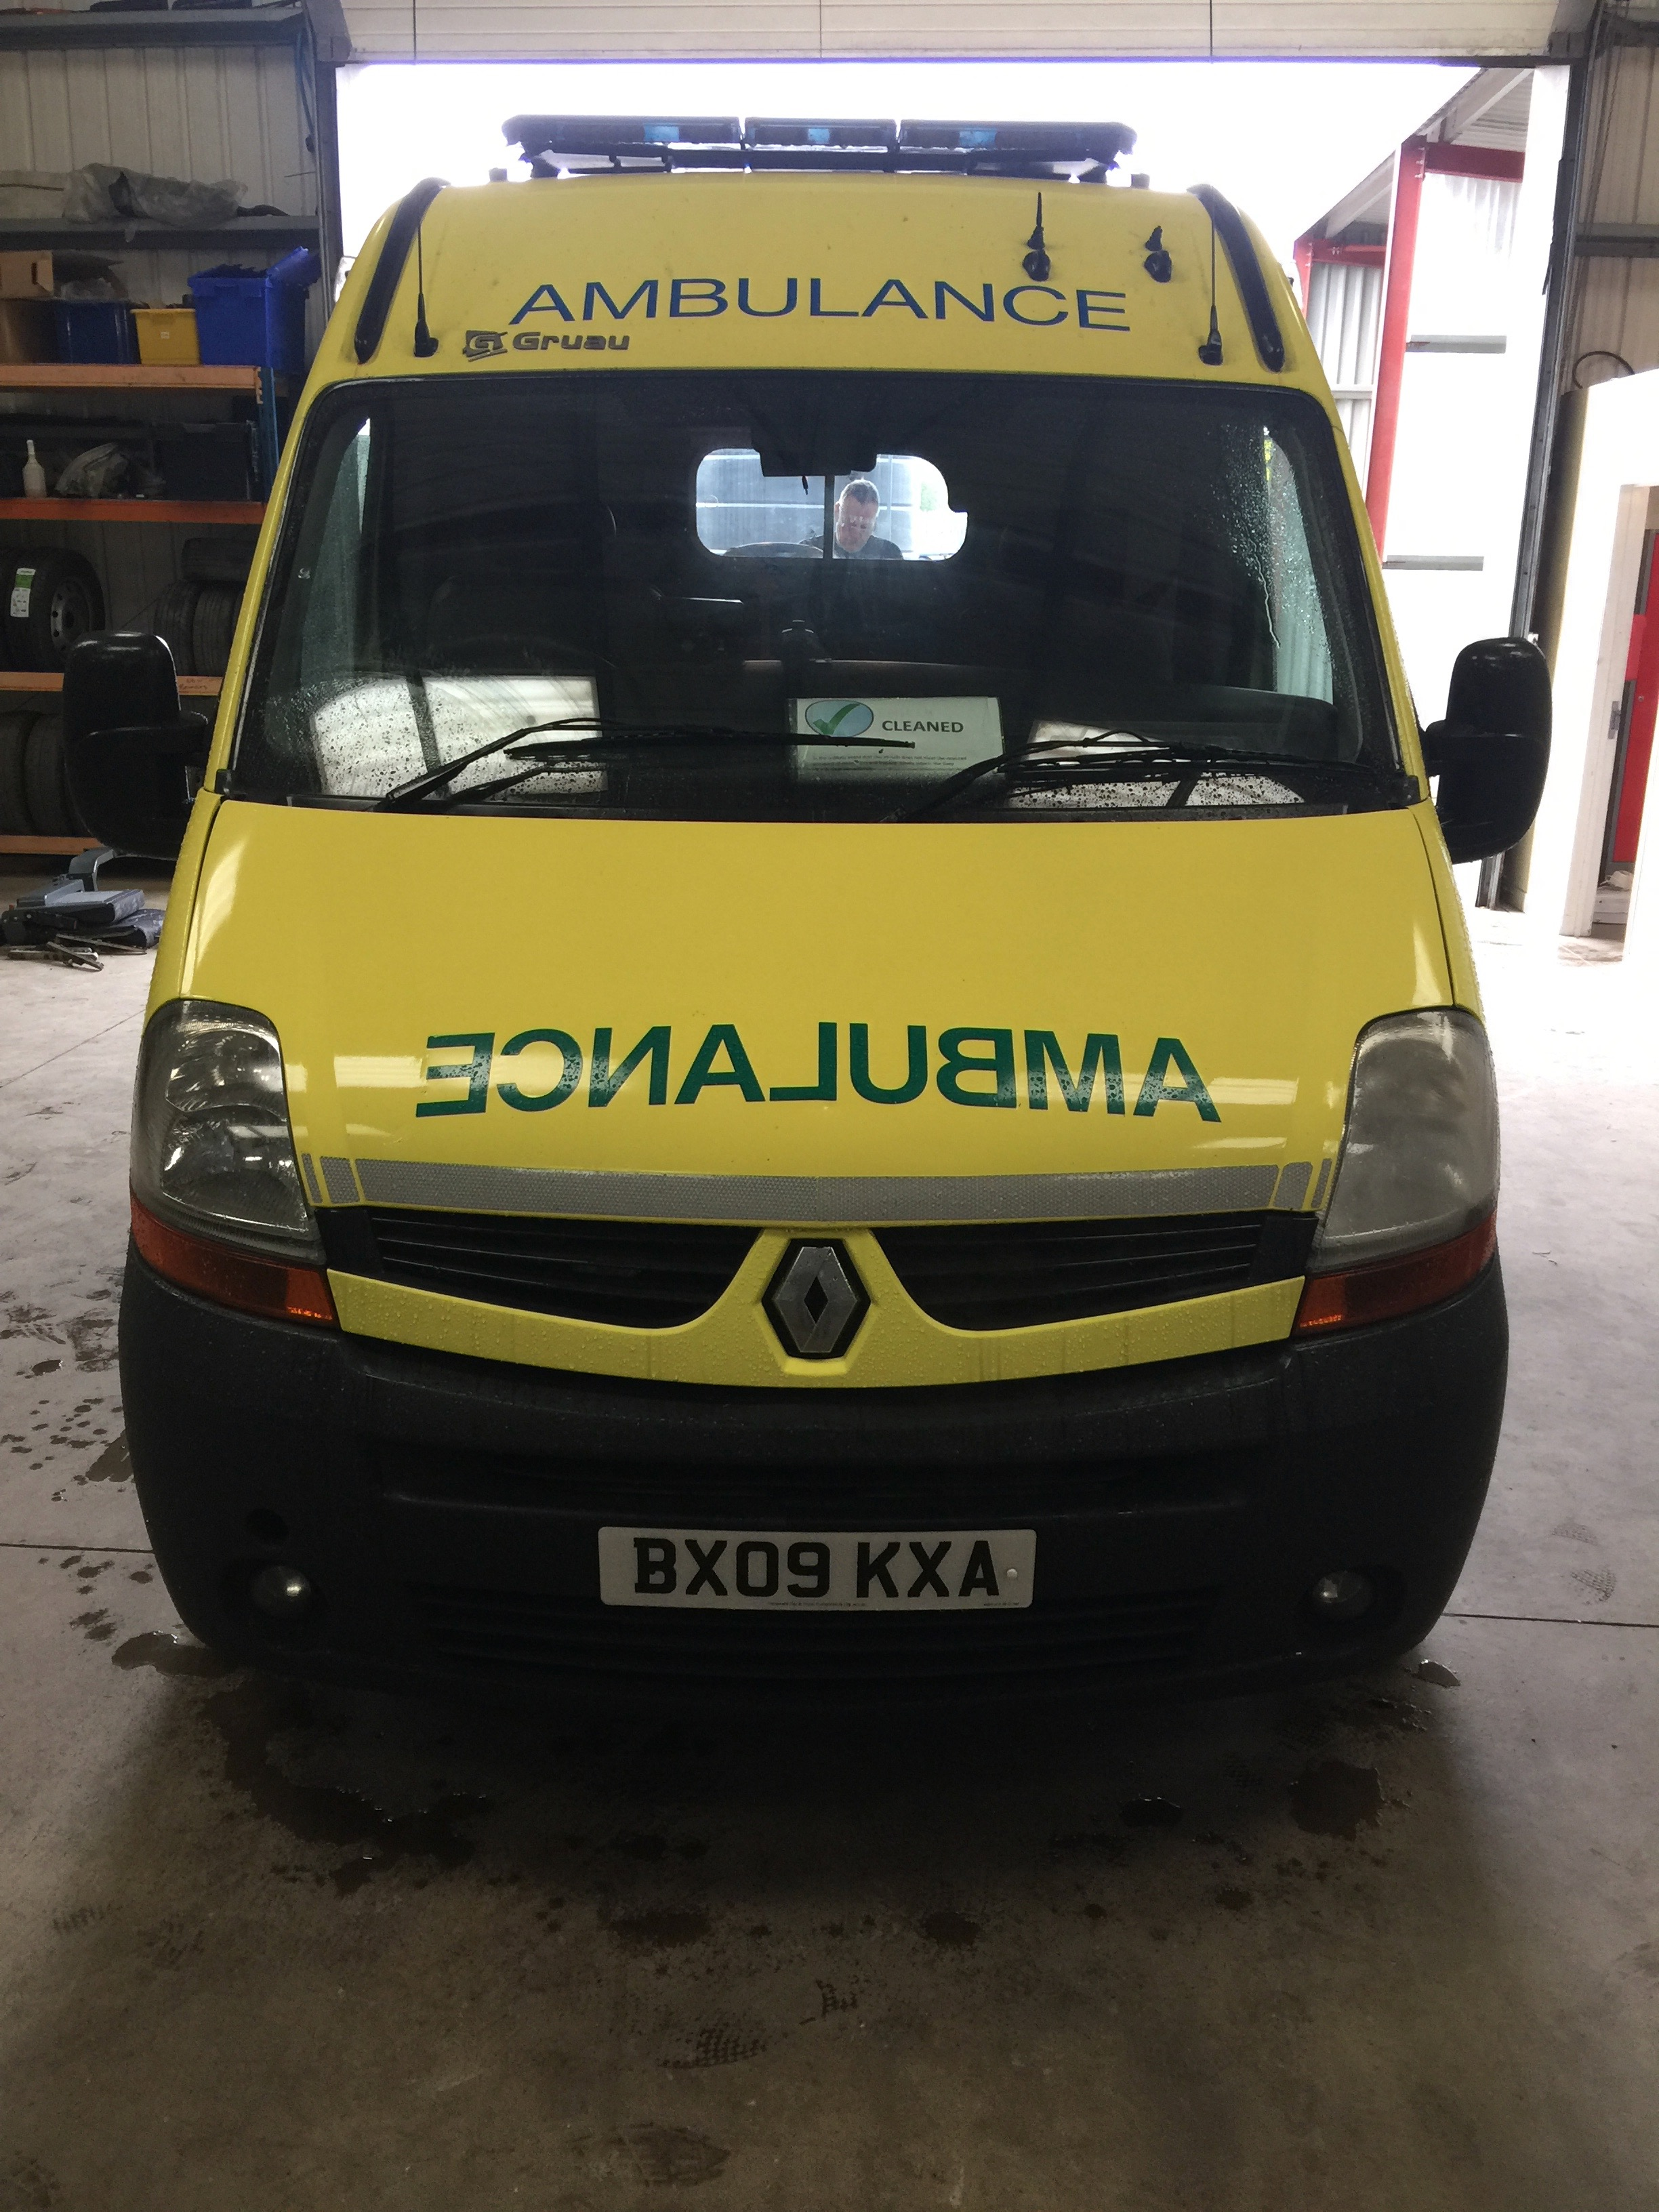 Lot 2 - Renault Master standard body HDU ambulance Registration No BX09 KXA, 336175 recorded miles, date